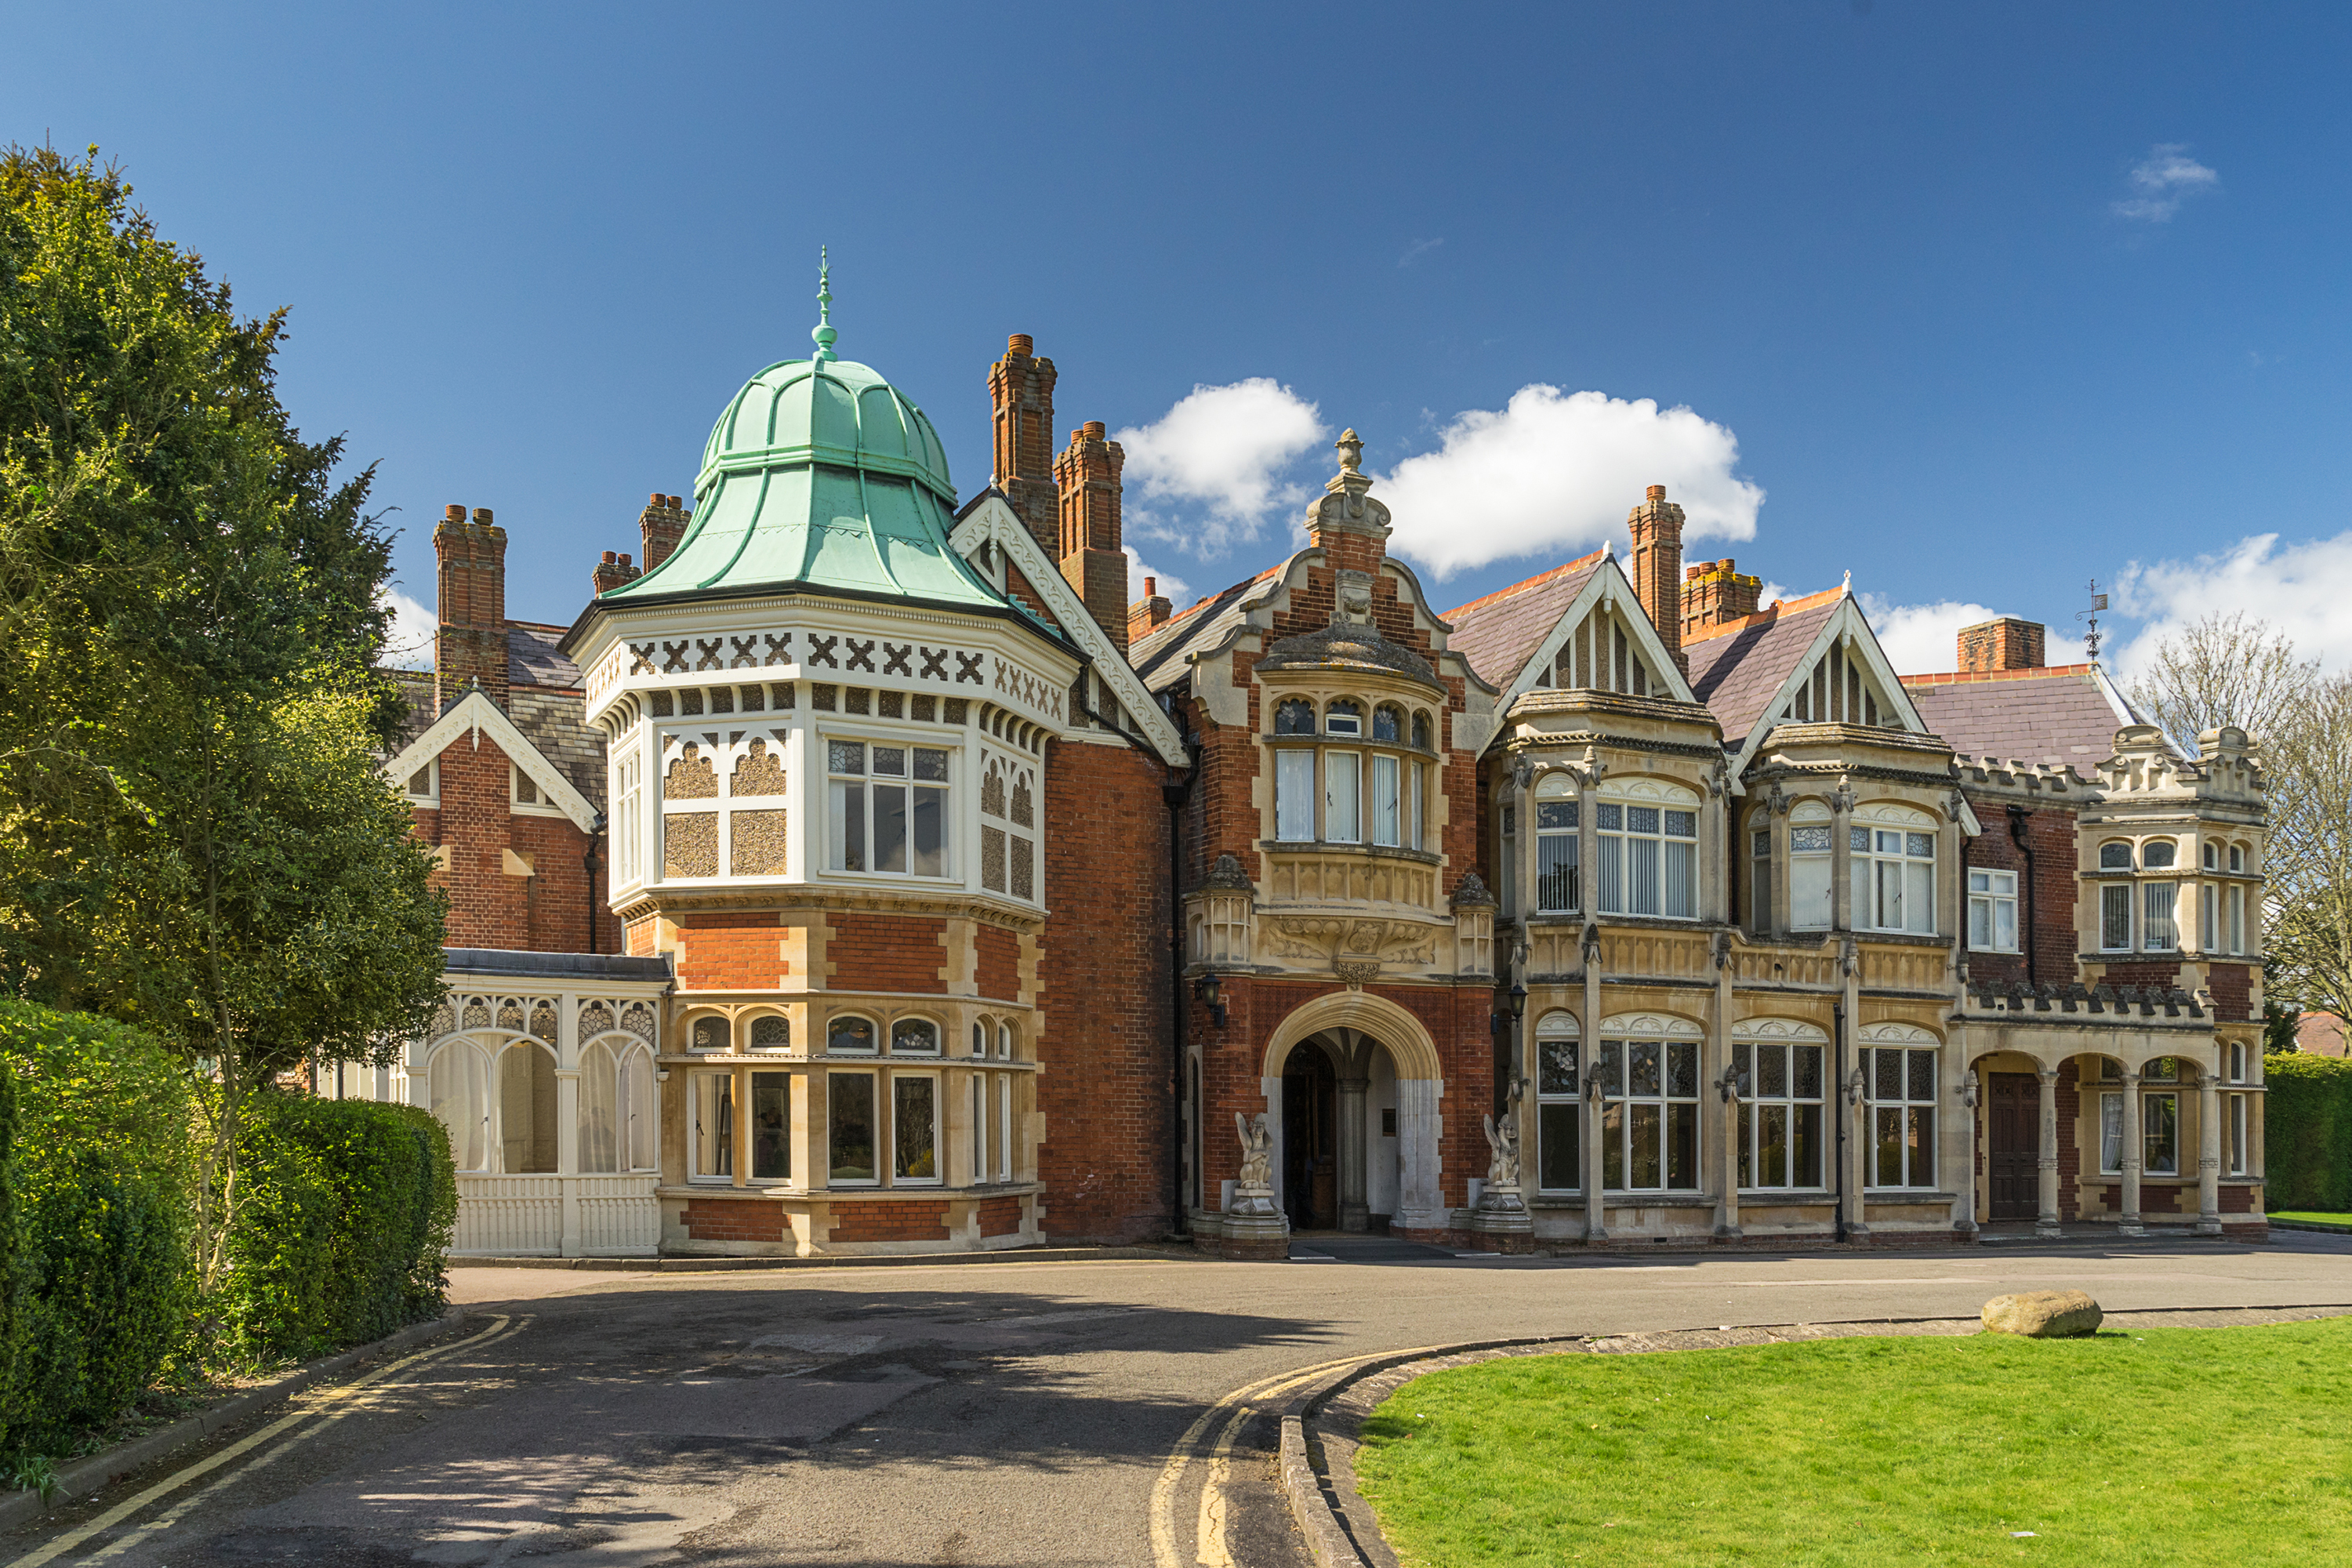 Bletchley Park in Buckinghamshire